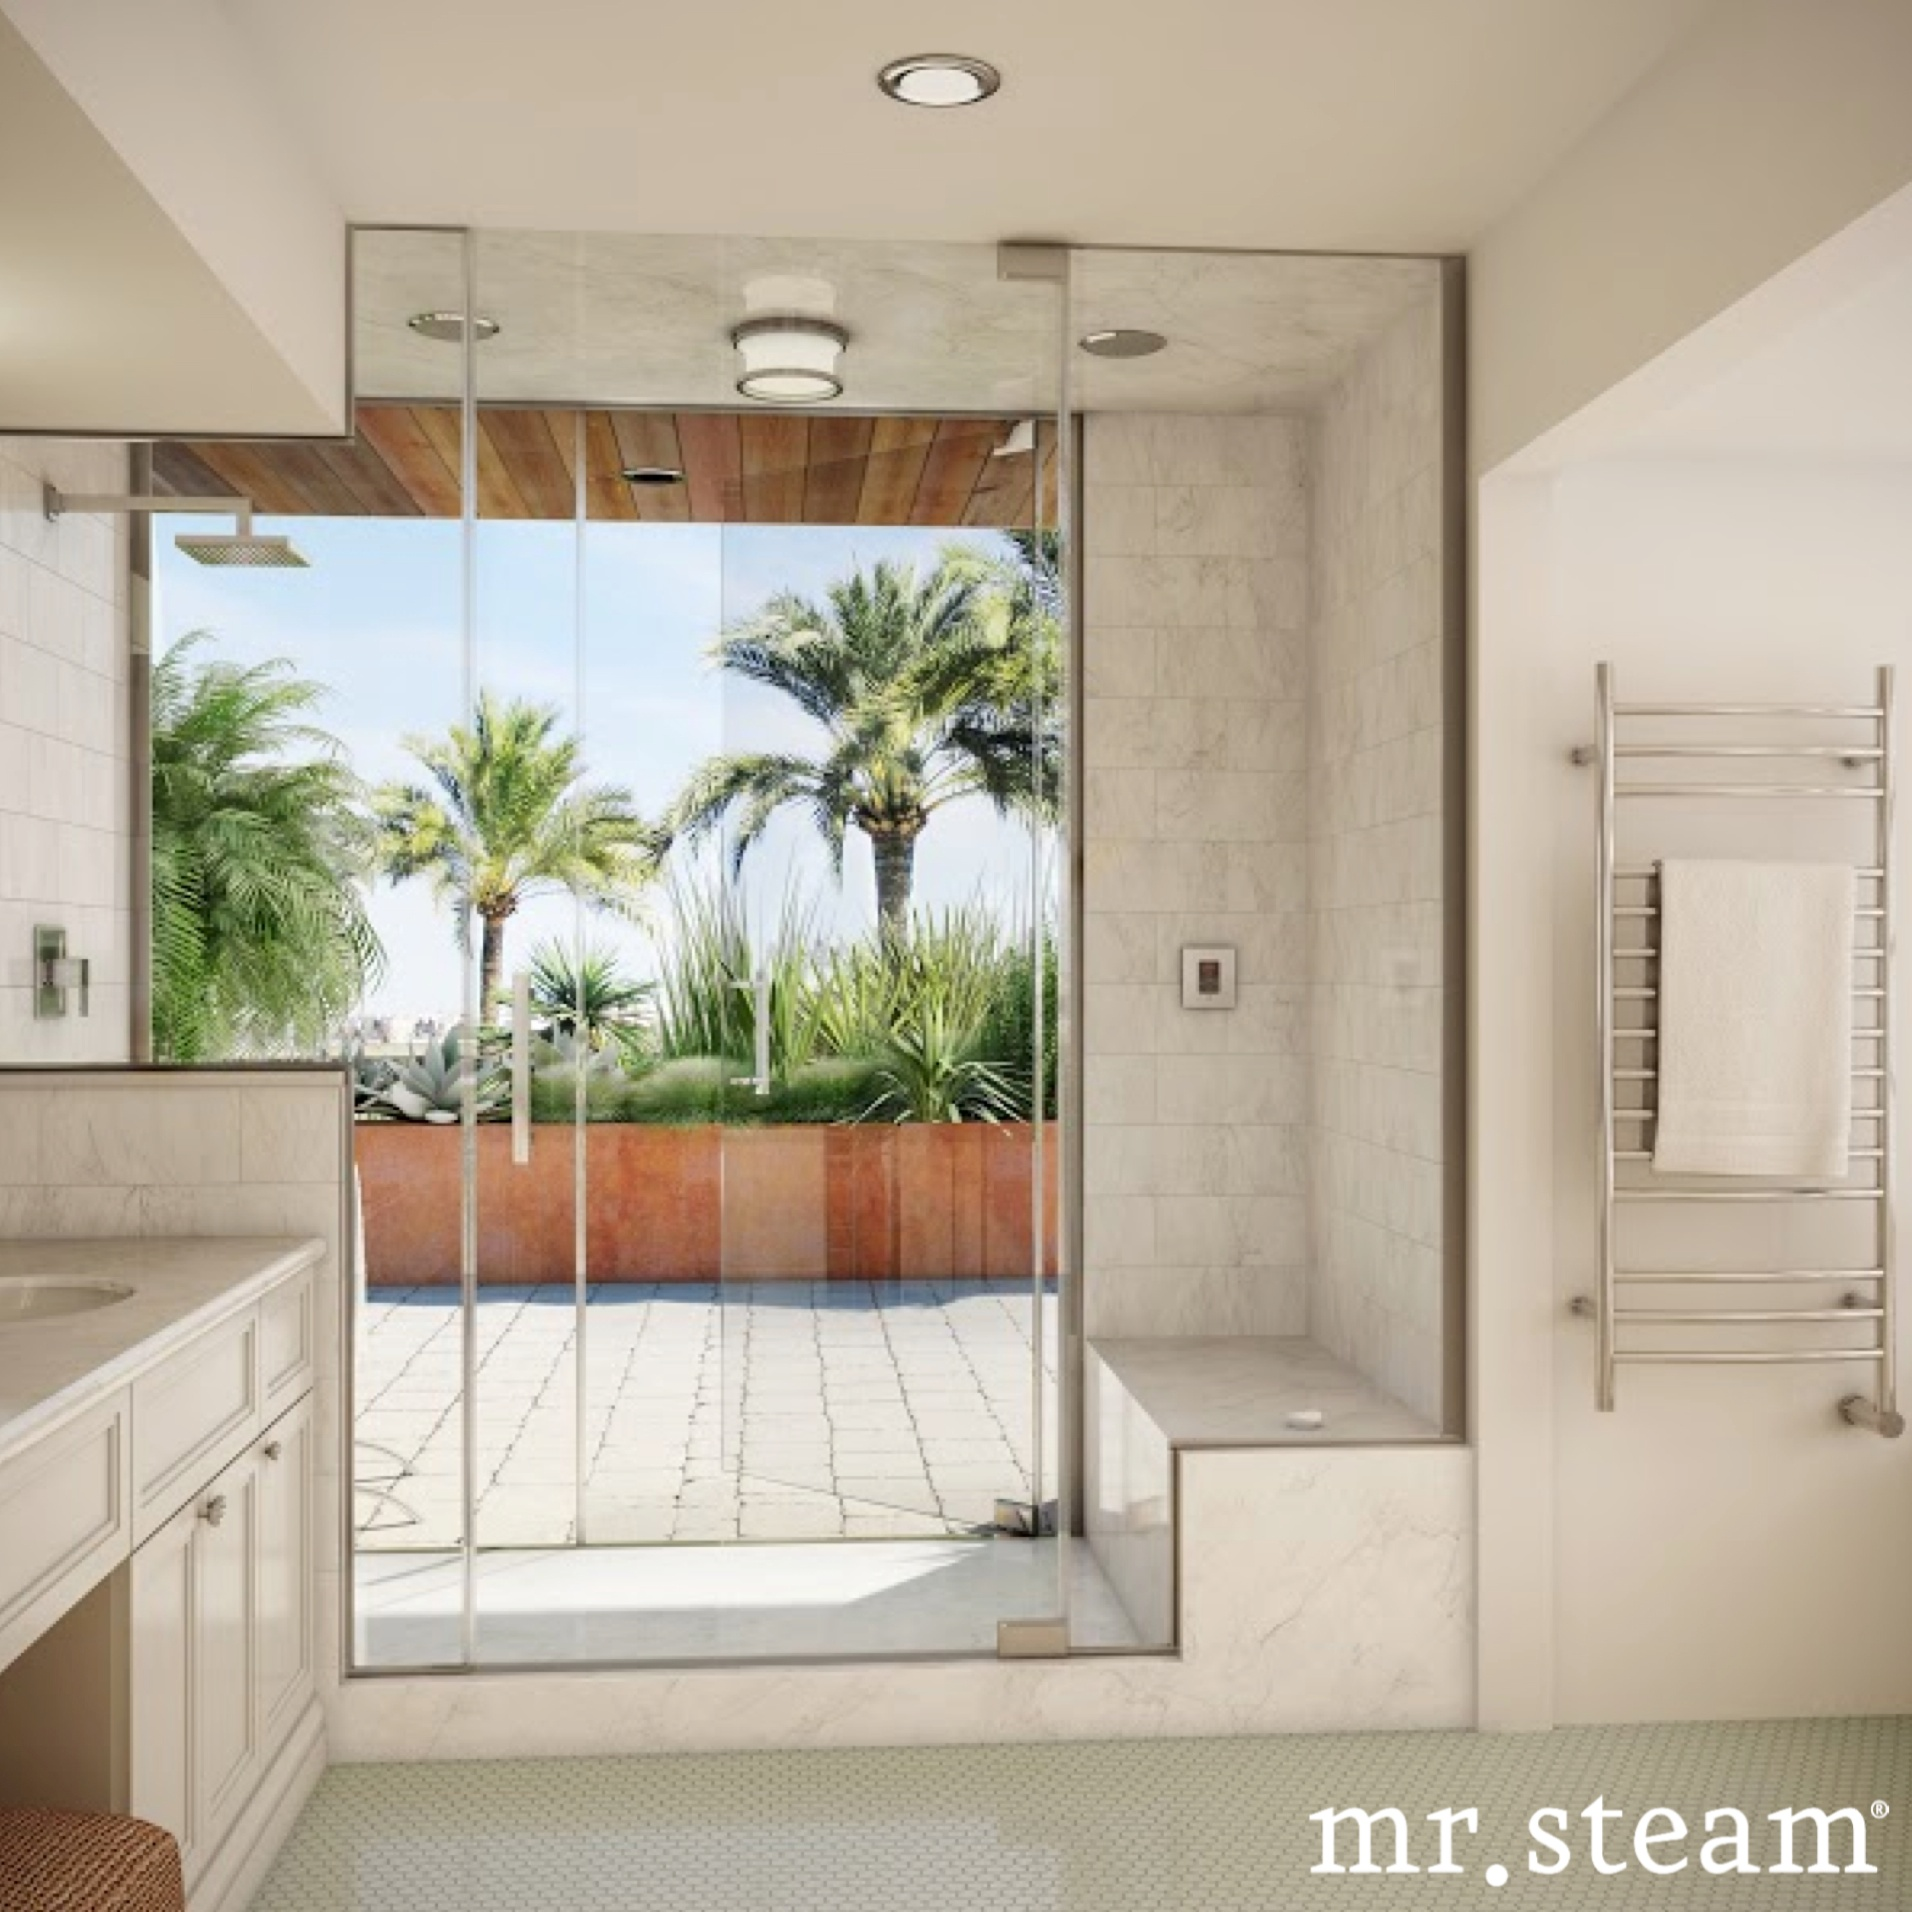 Two Types of Steam Shower Windows to Seal